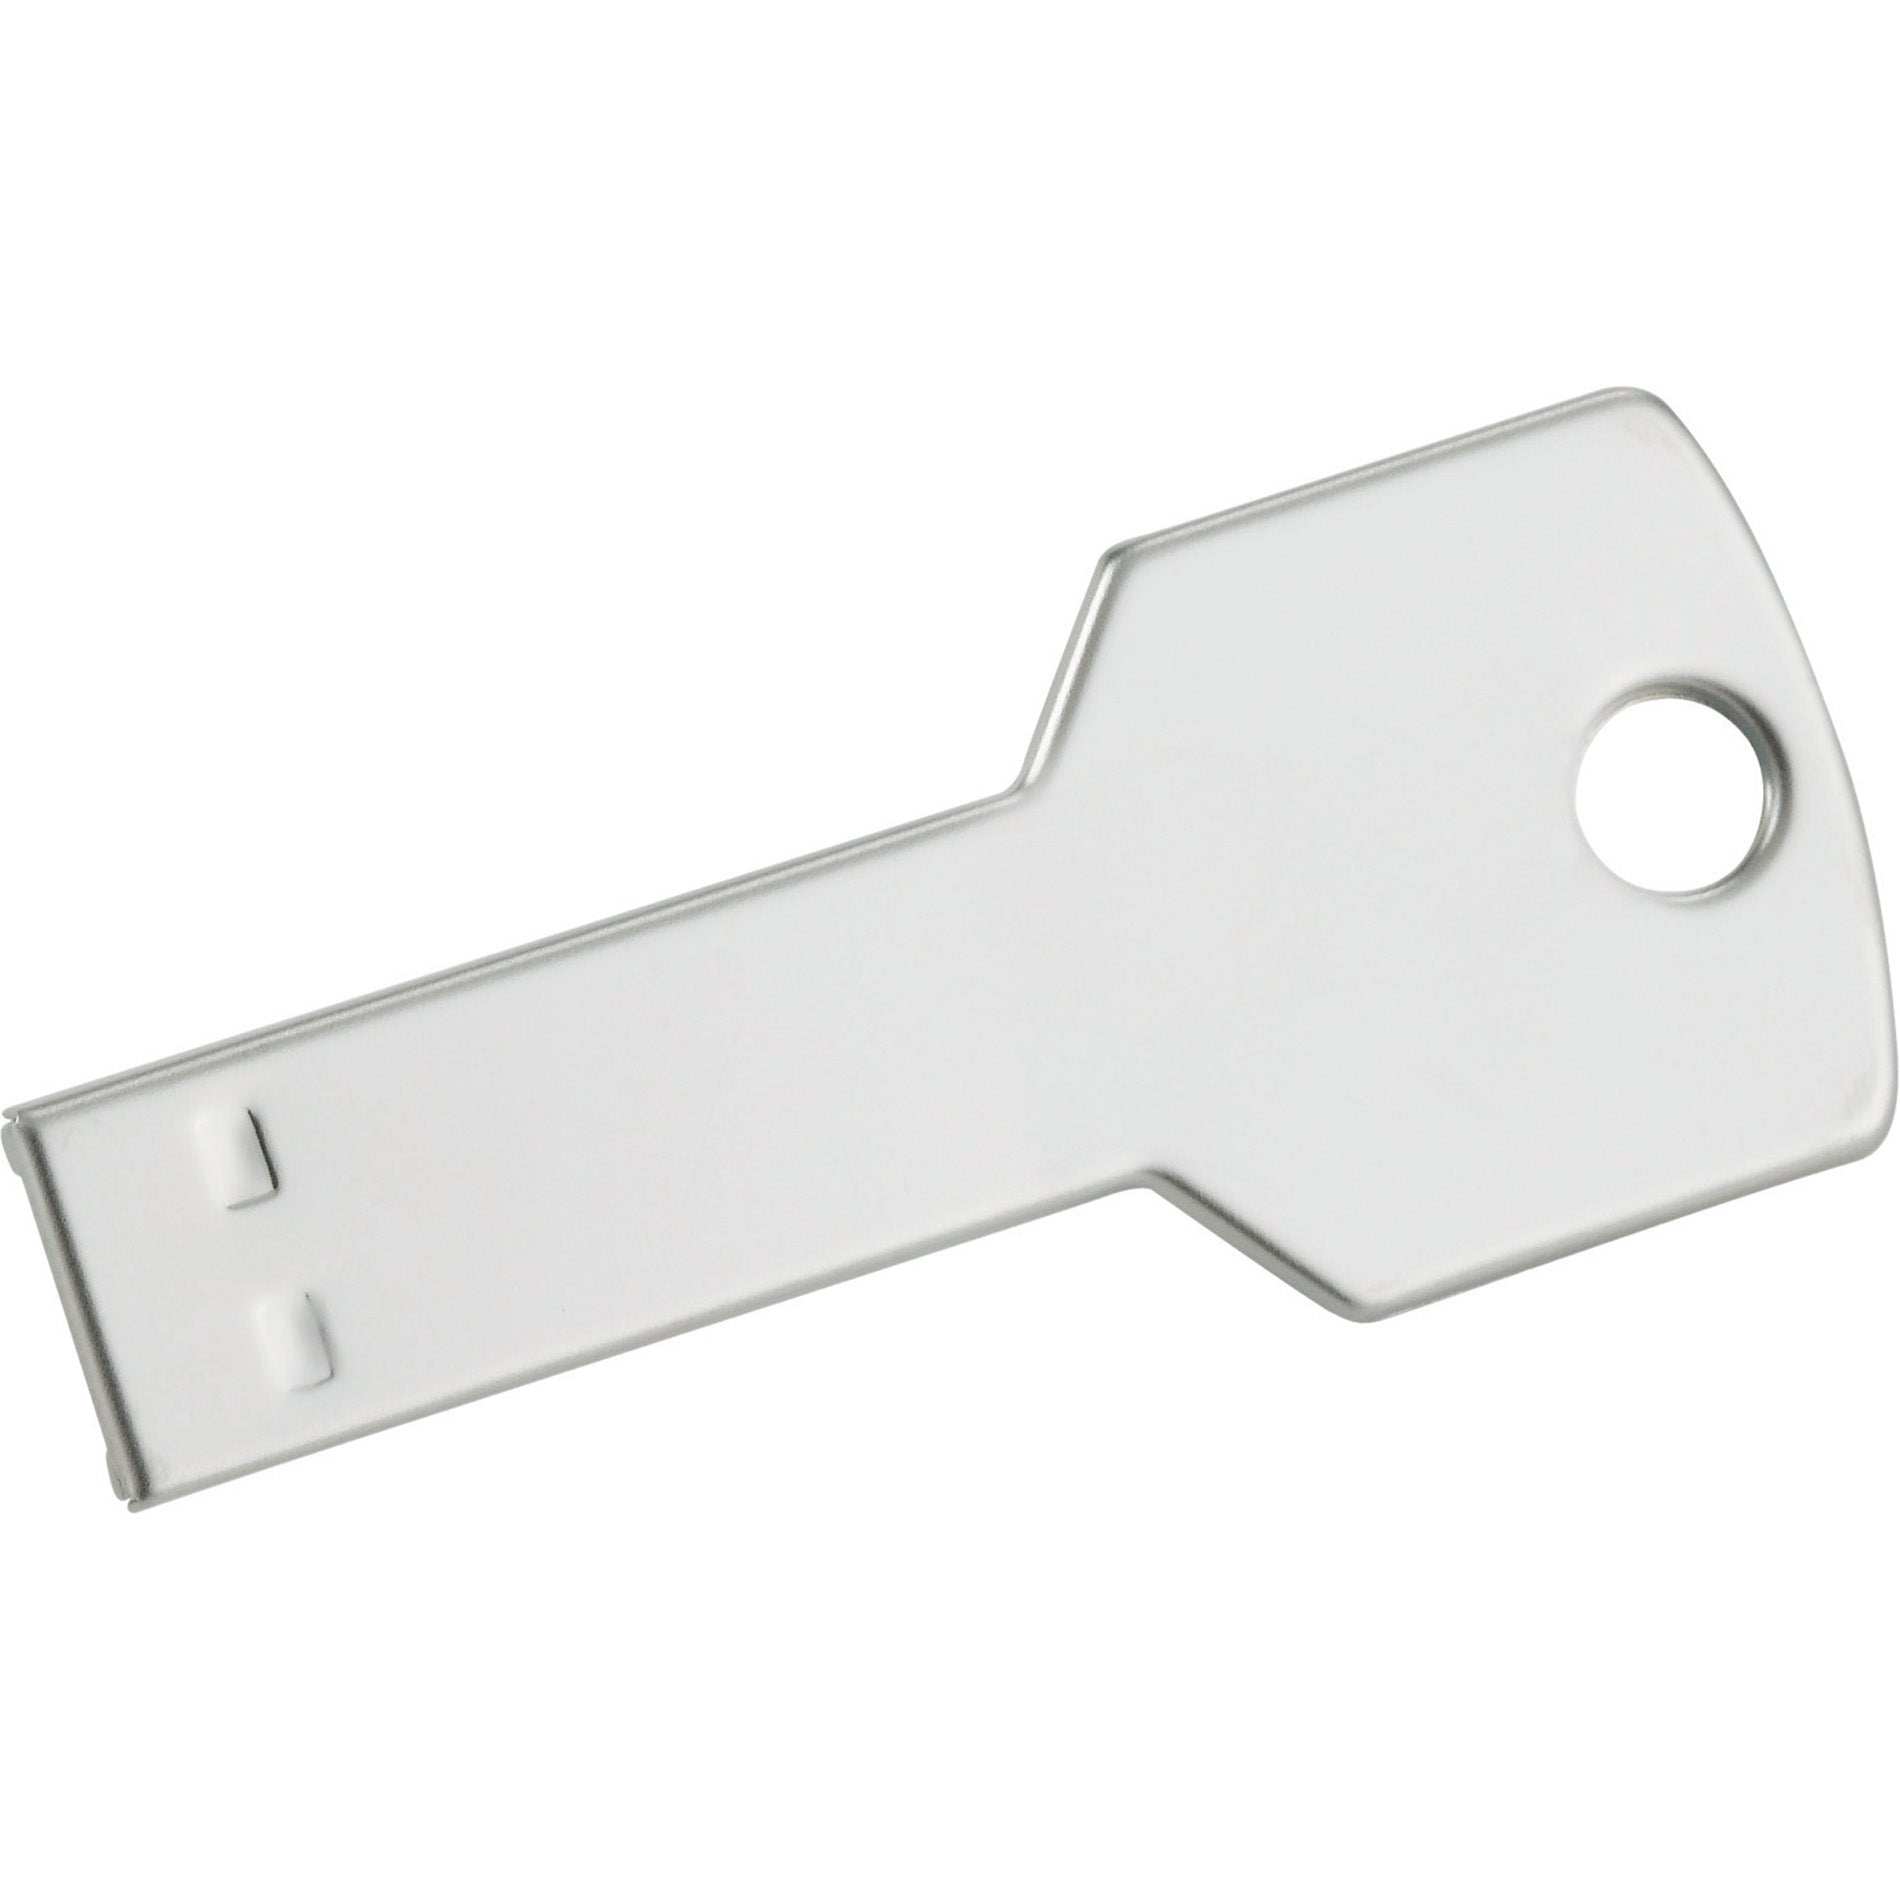 LEEDS KEY FLASH DRIVE